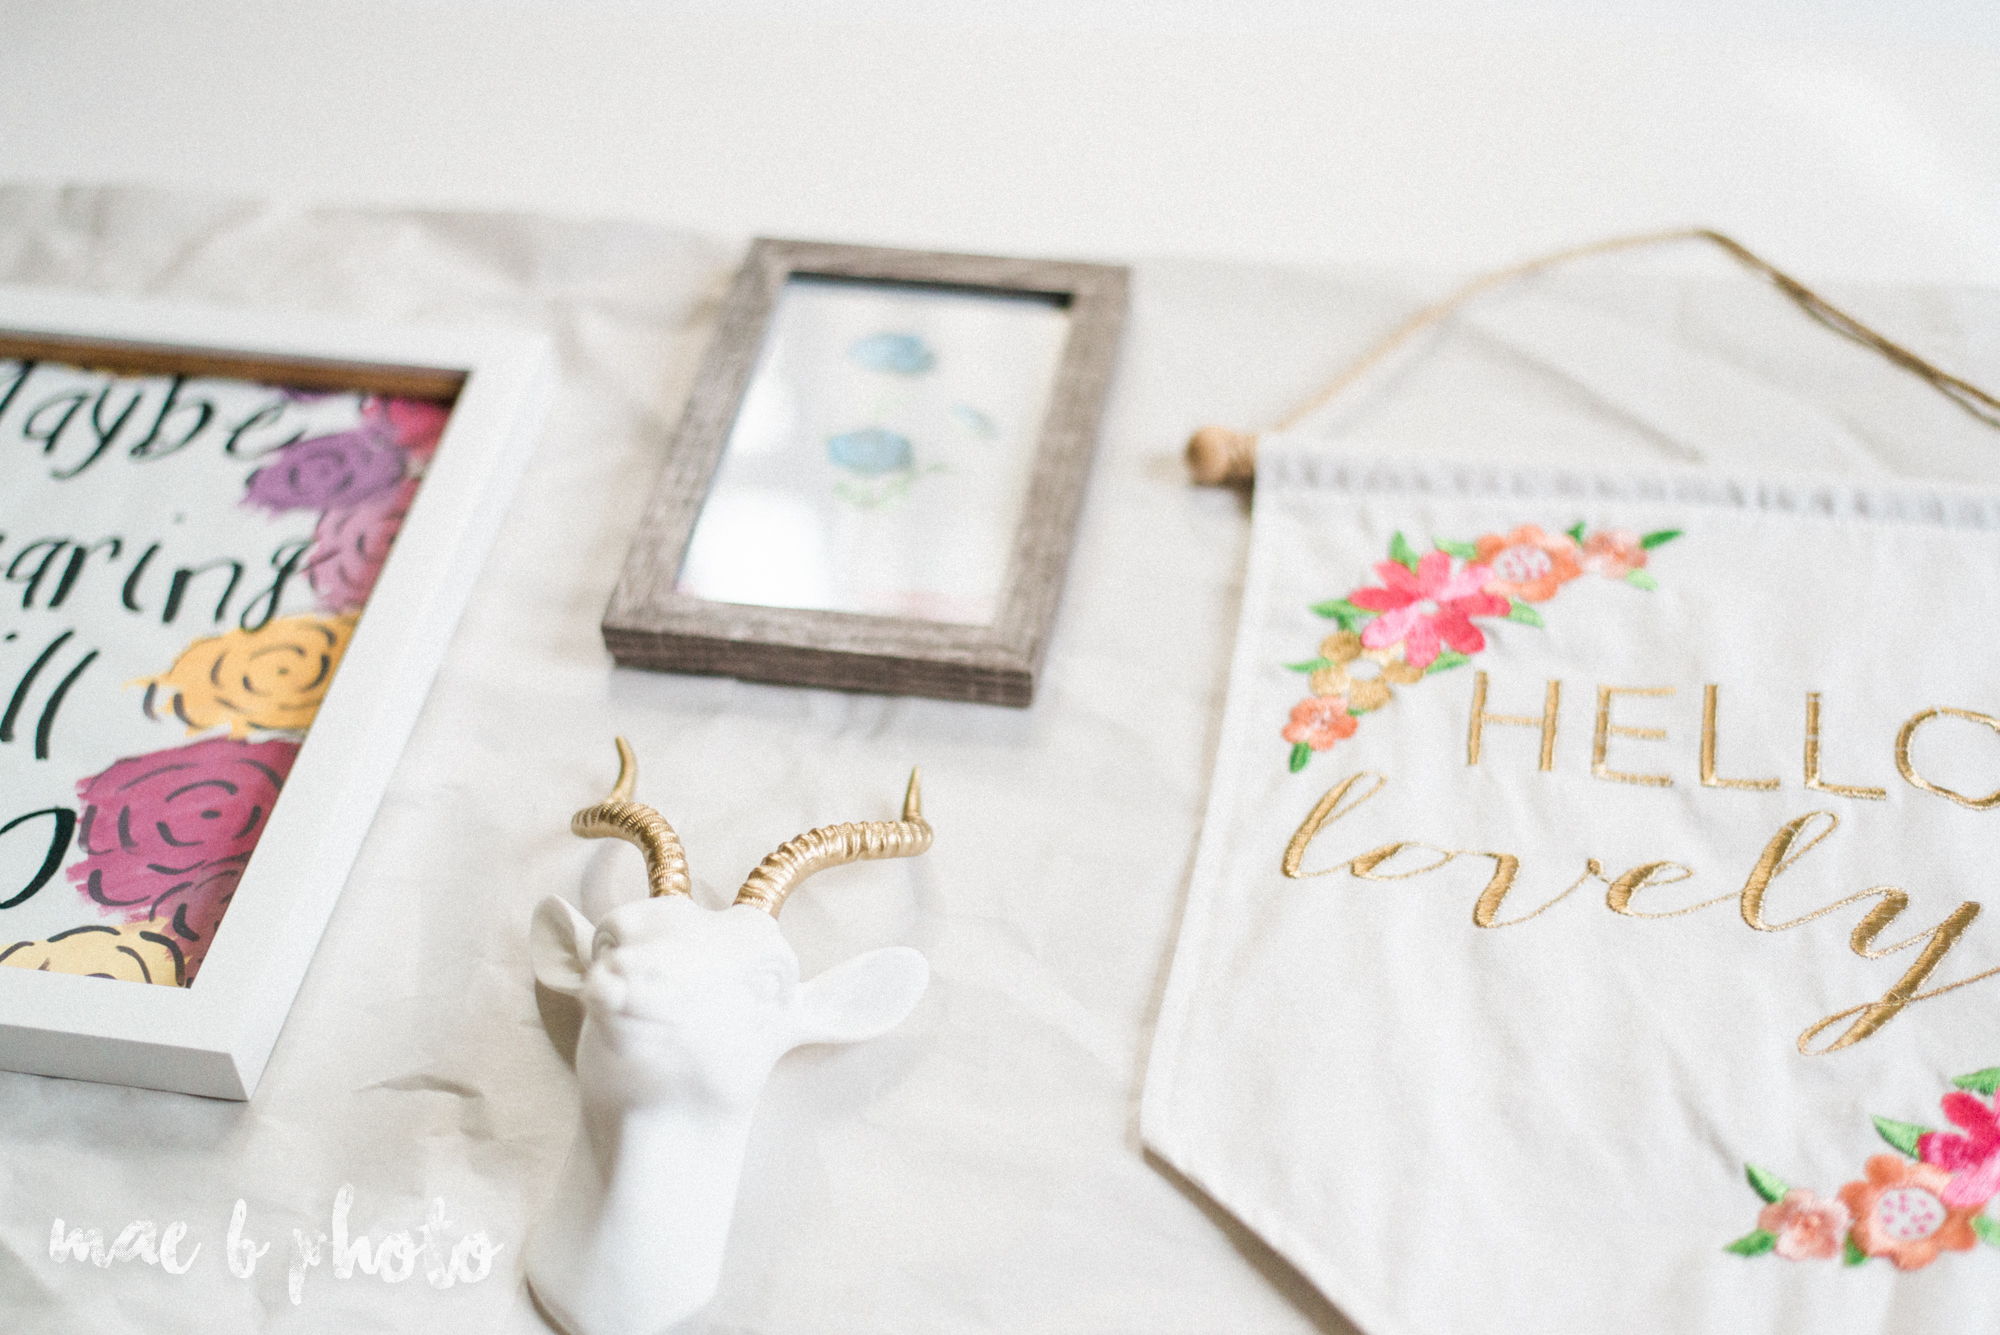 how to hang a wall collage by mae b photo-6.jpg